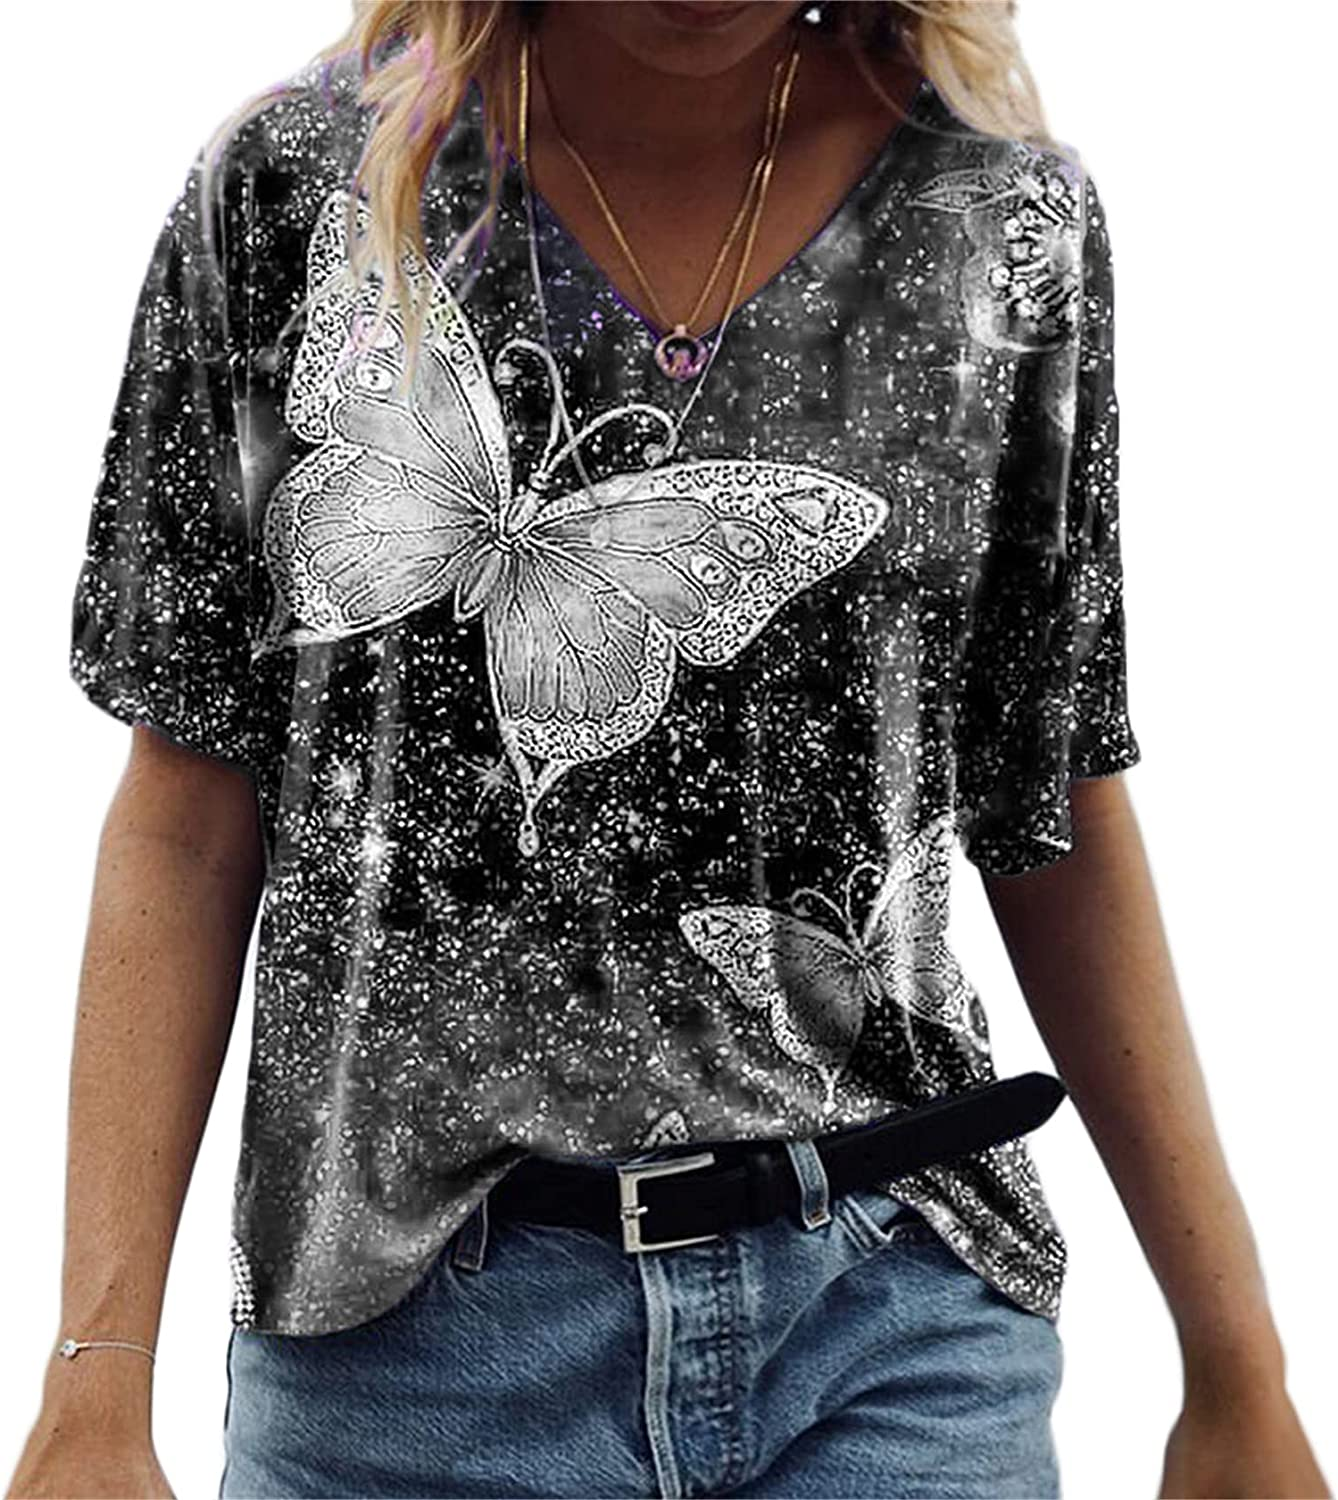 Andongnywell Women's Casual Five-Point Sleeve Butterfly Print top T Shirts Tunics Tops Blouses Tunics